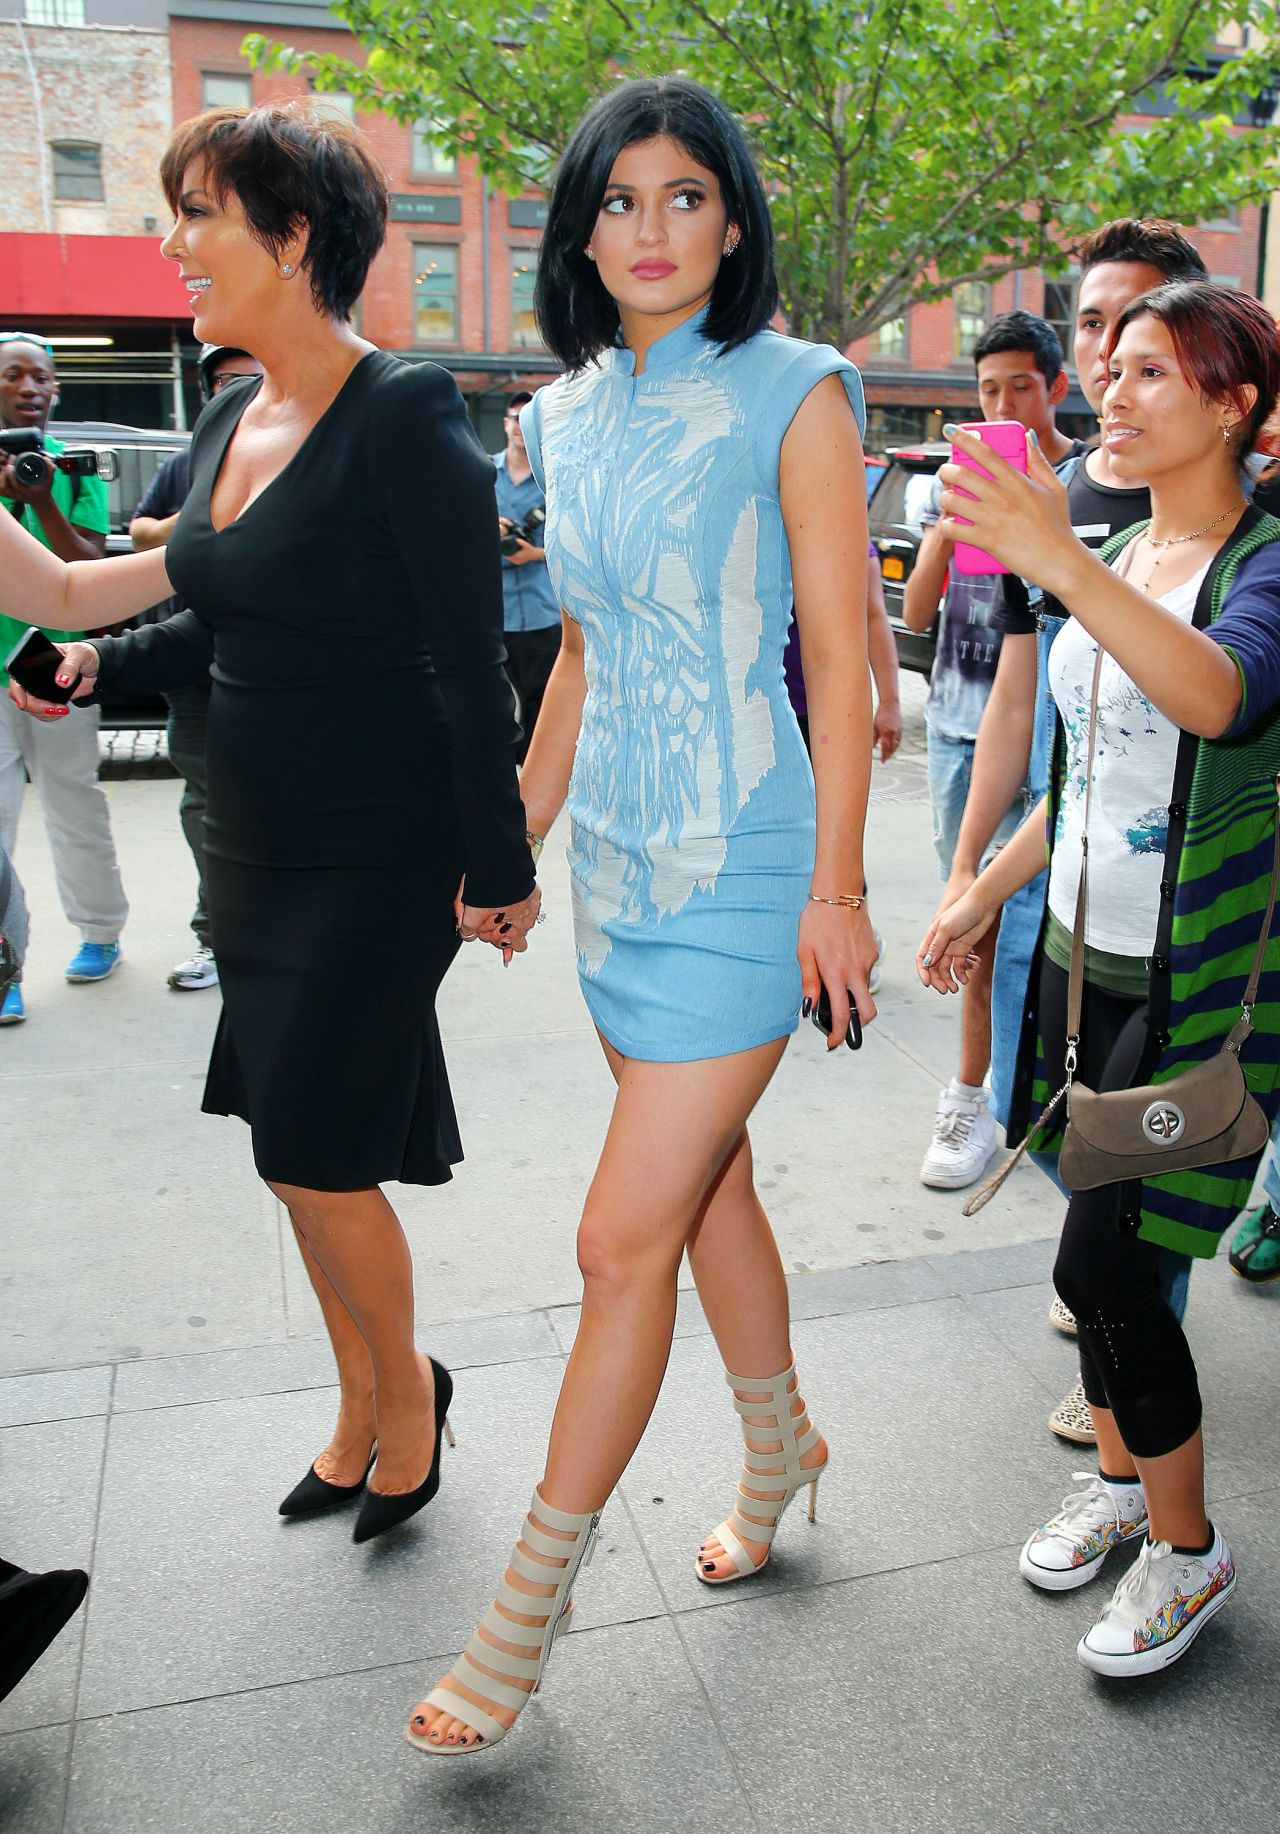 Watch Kylie jenner leaving her hotel in nyc video